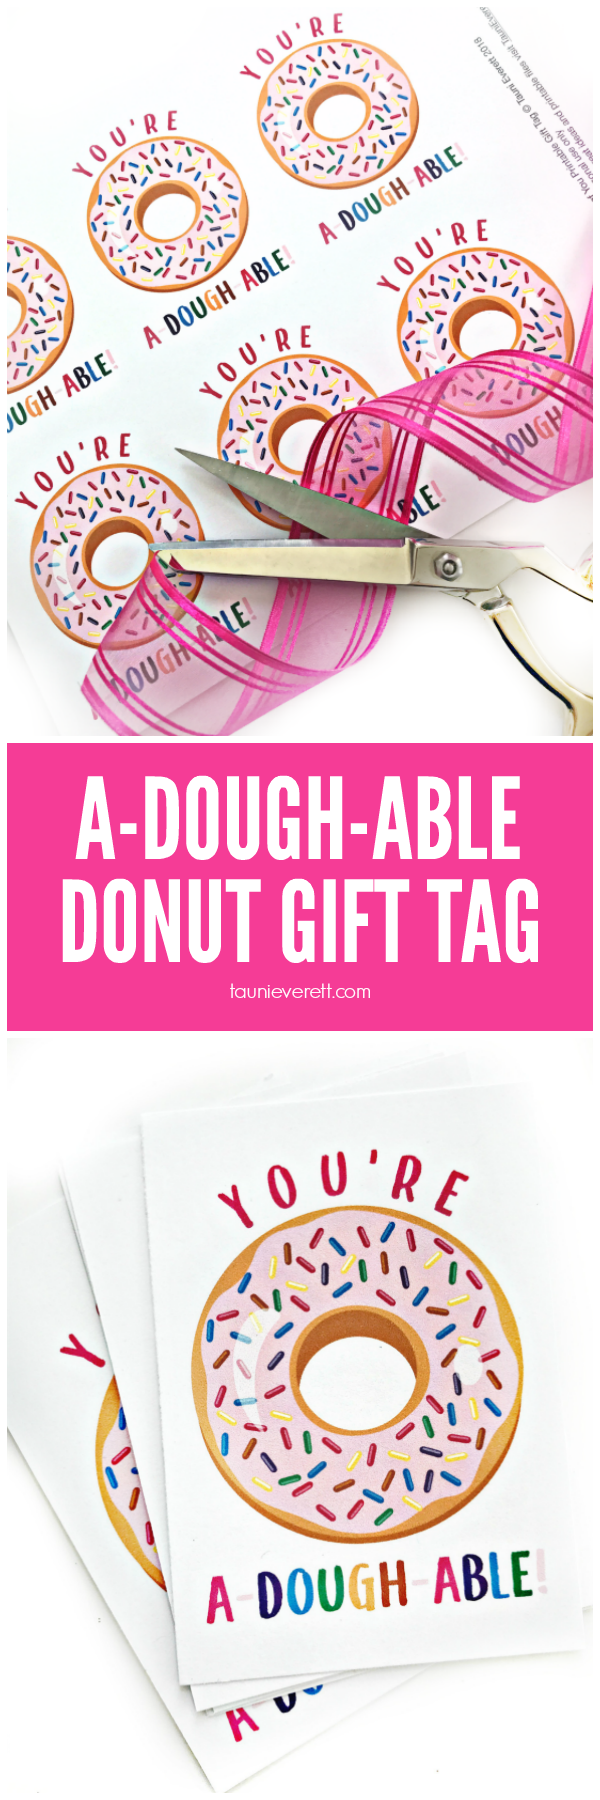 A-dough-able Donut Printable Gift Tag for Valentines by Tauni Everett